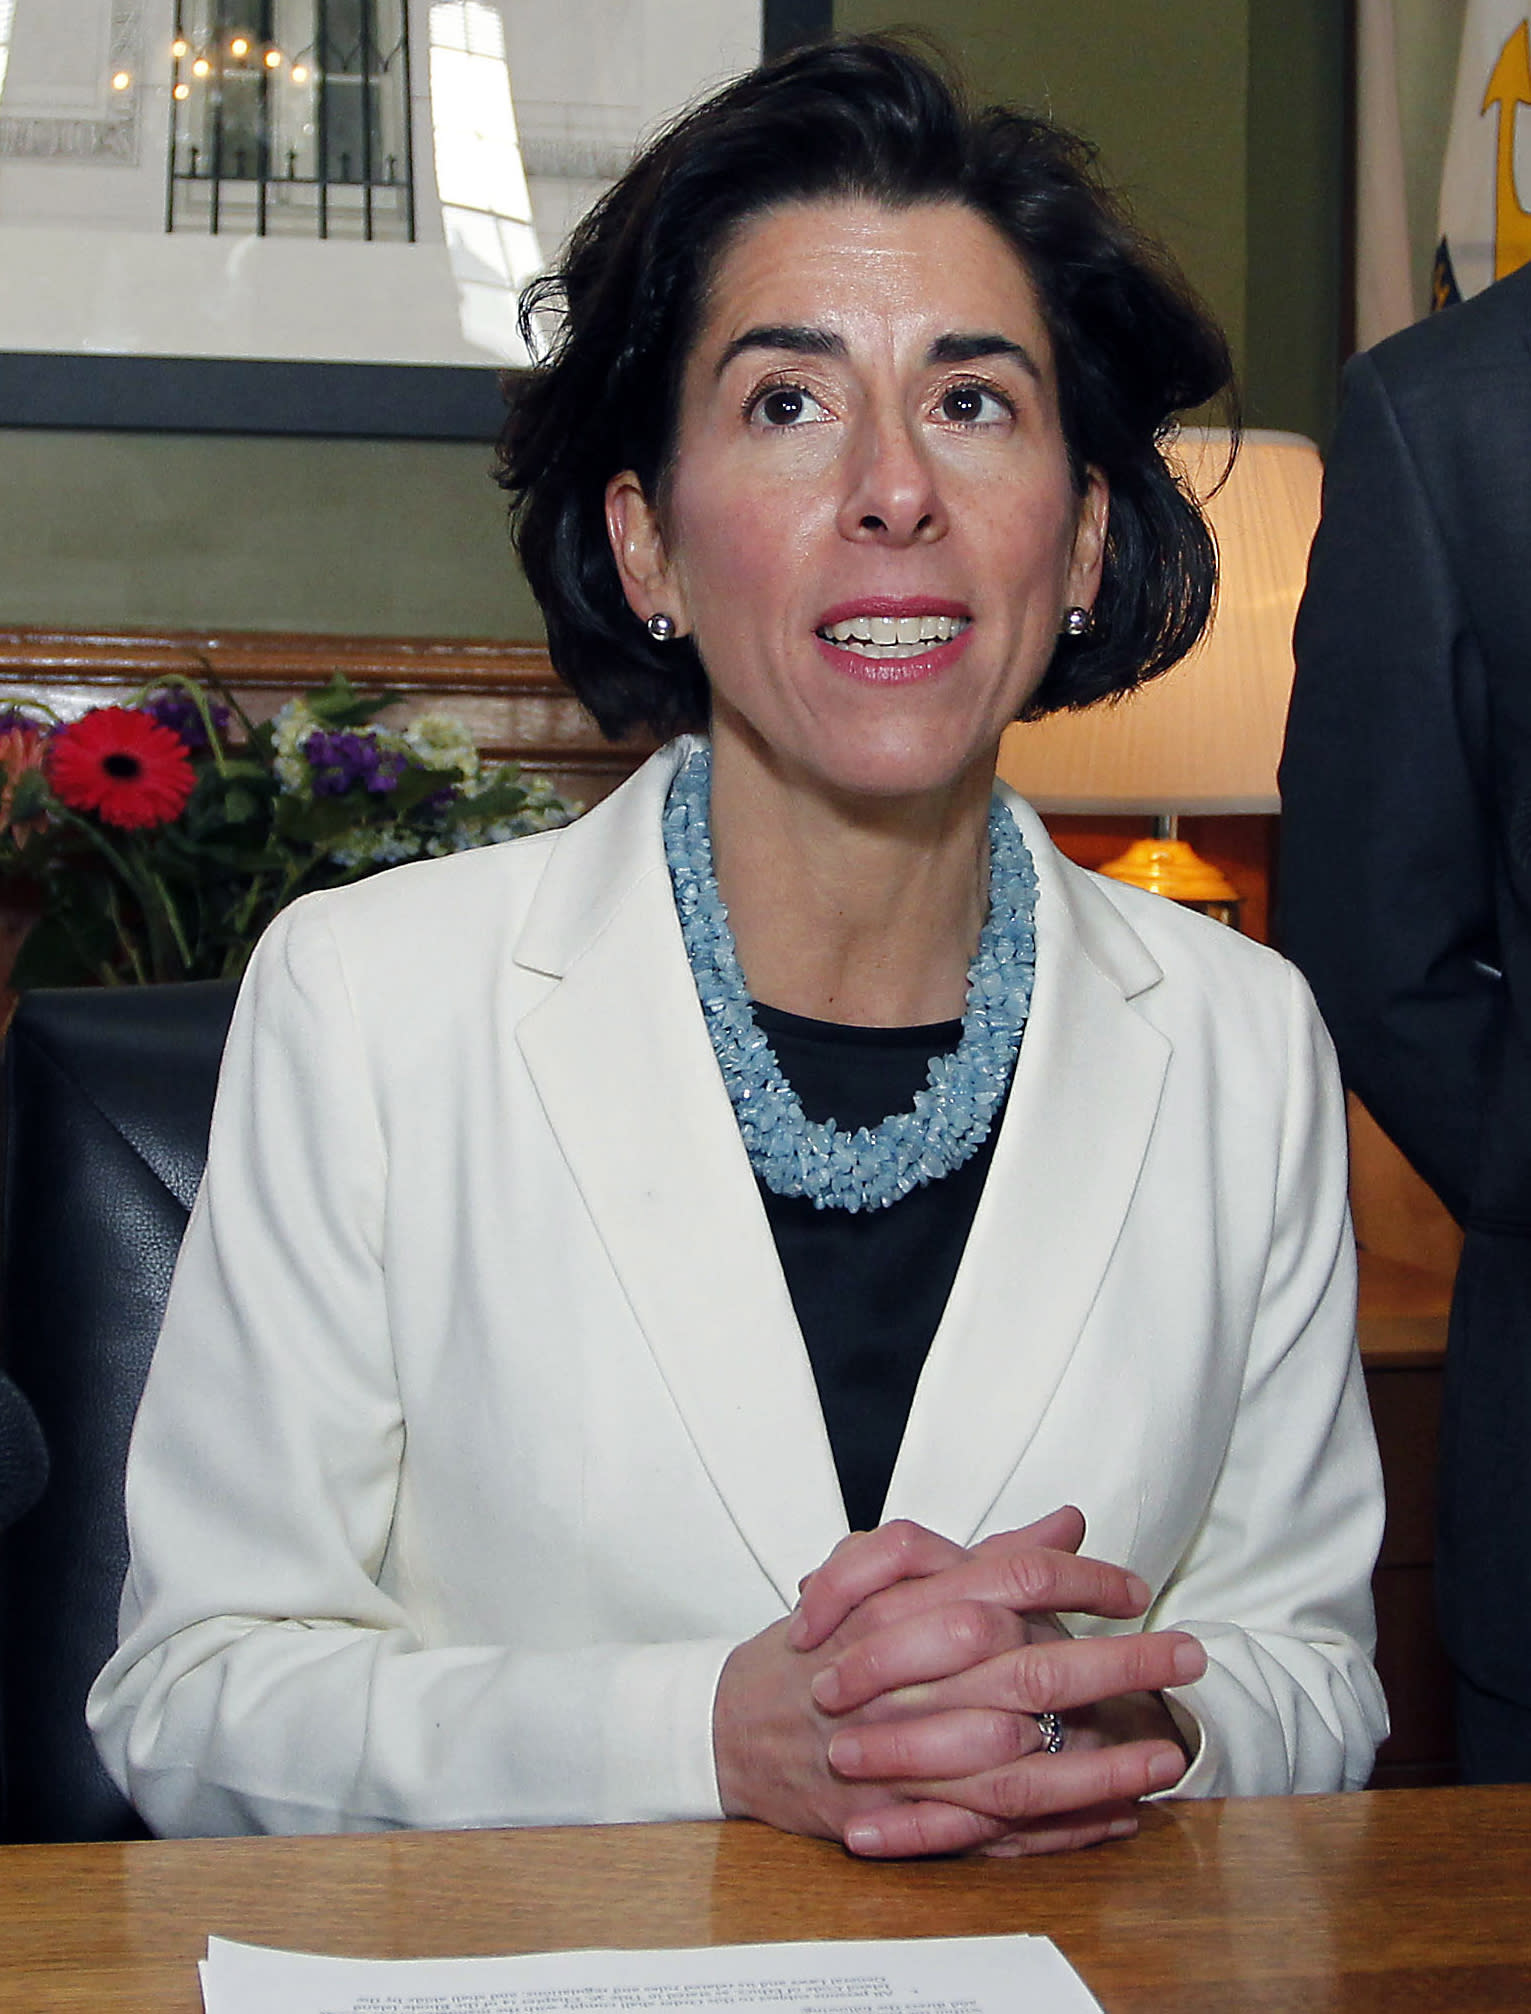 Rhode Island governor focused on economy in 1st 100 days